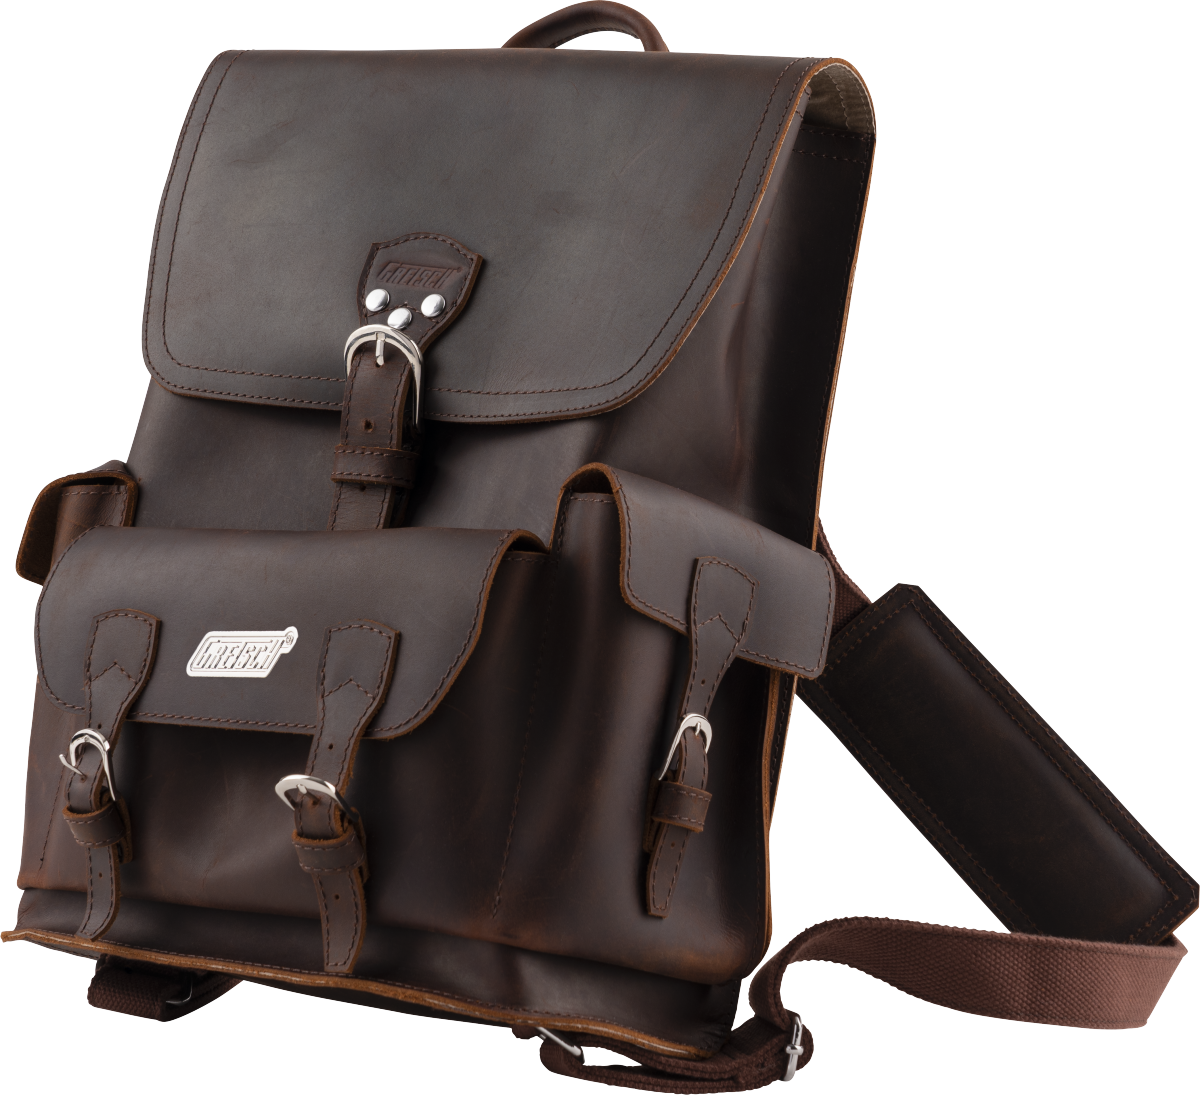 Gretsch Limited Edition Leather Backpack